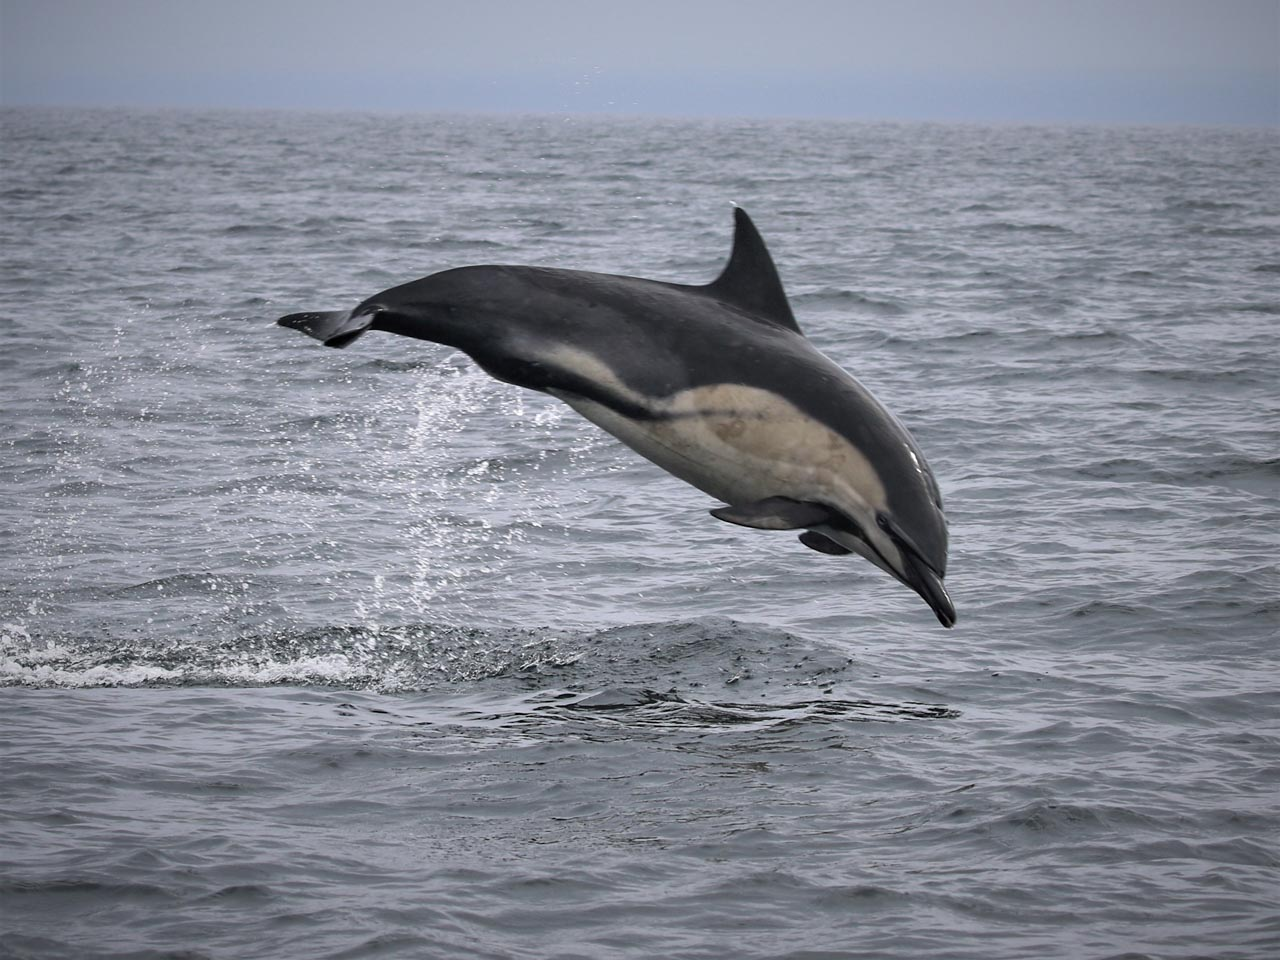 A common dolphin leaps out of the ocean, Bay of Biscay